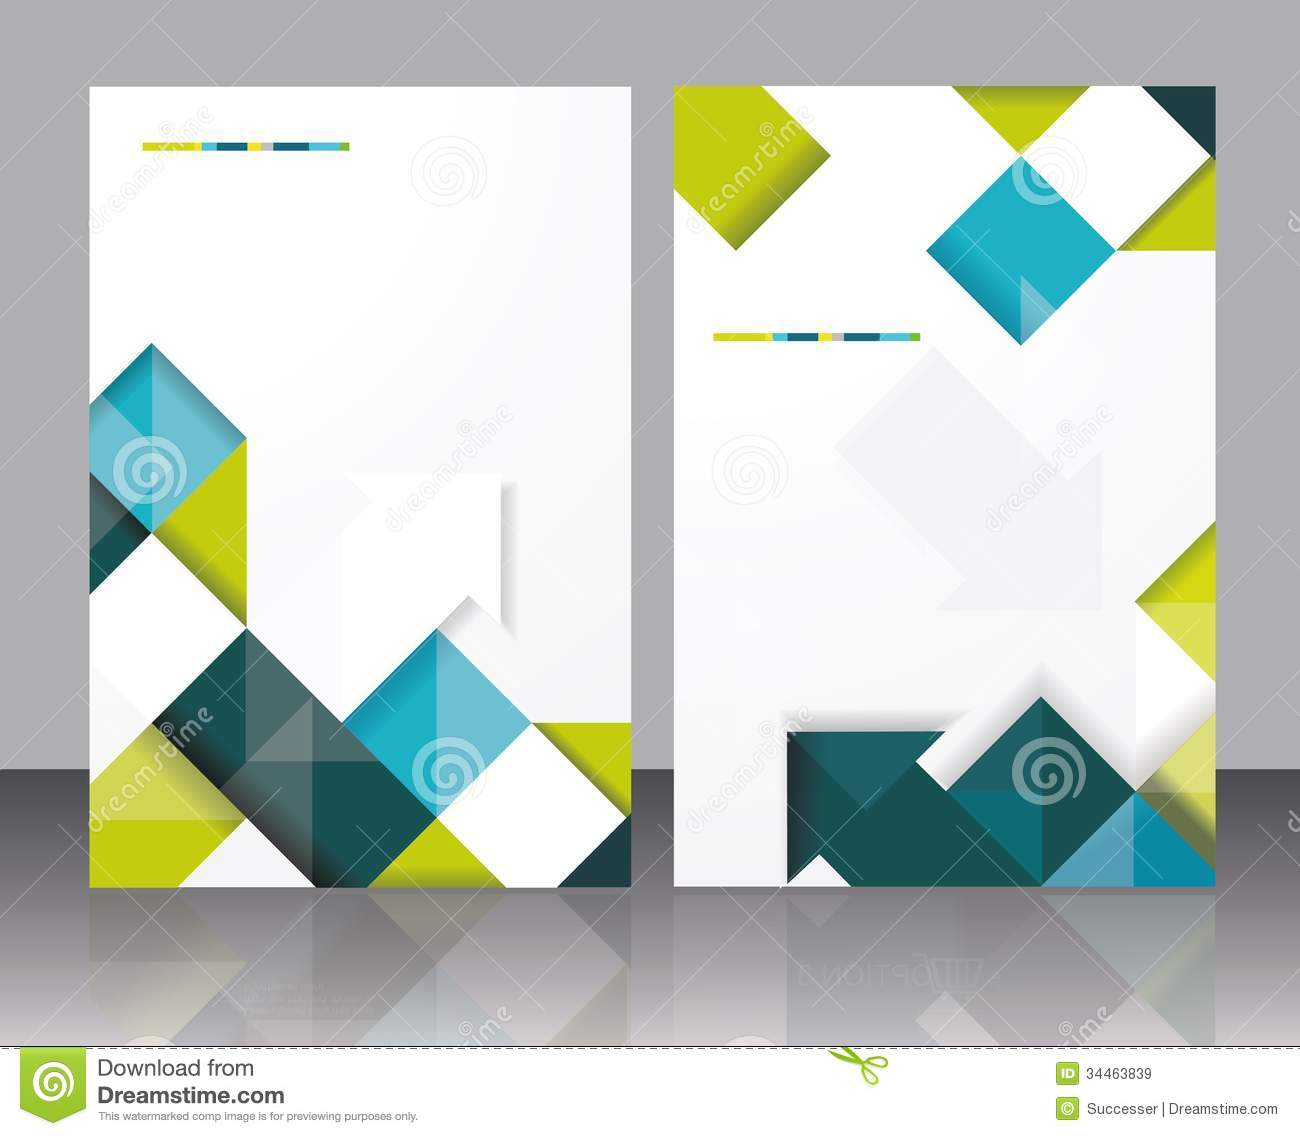 Vector brochure template design with cubes and arrows elements vector brochure template design with cubes and arrows elements maxwellsz